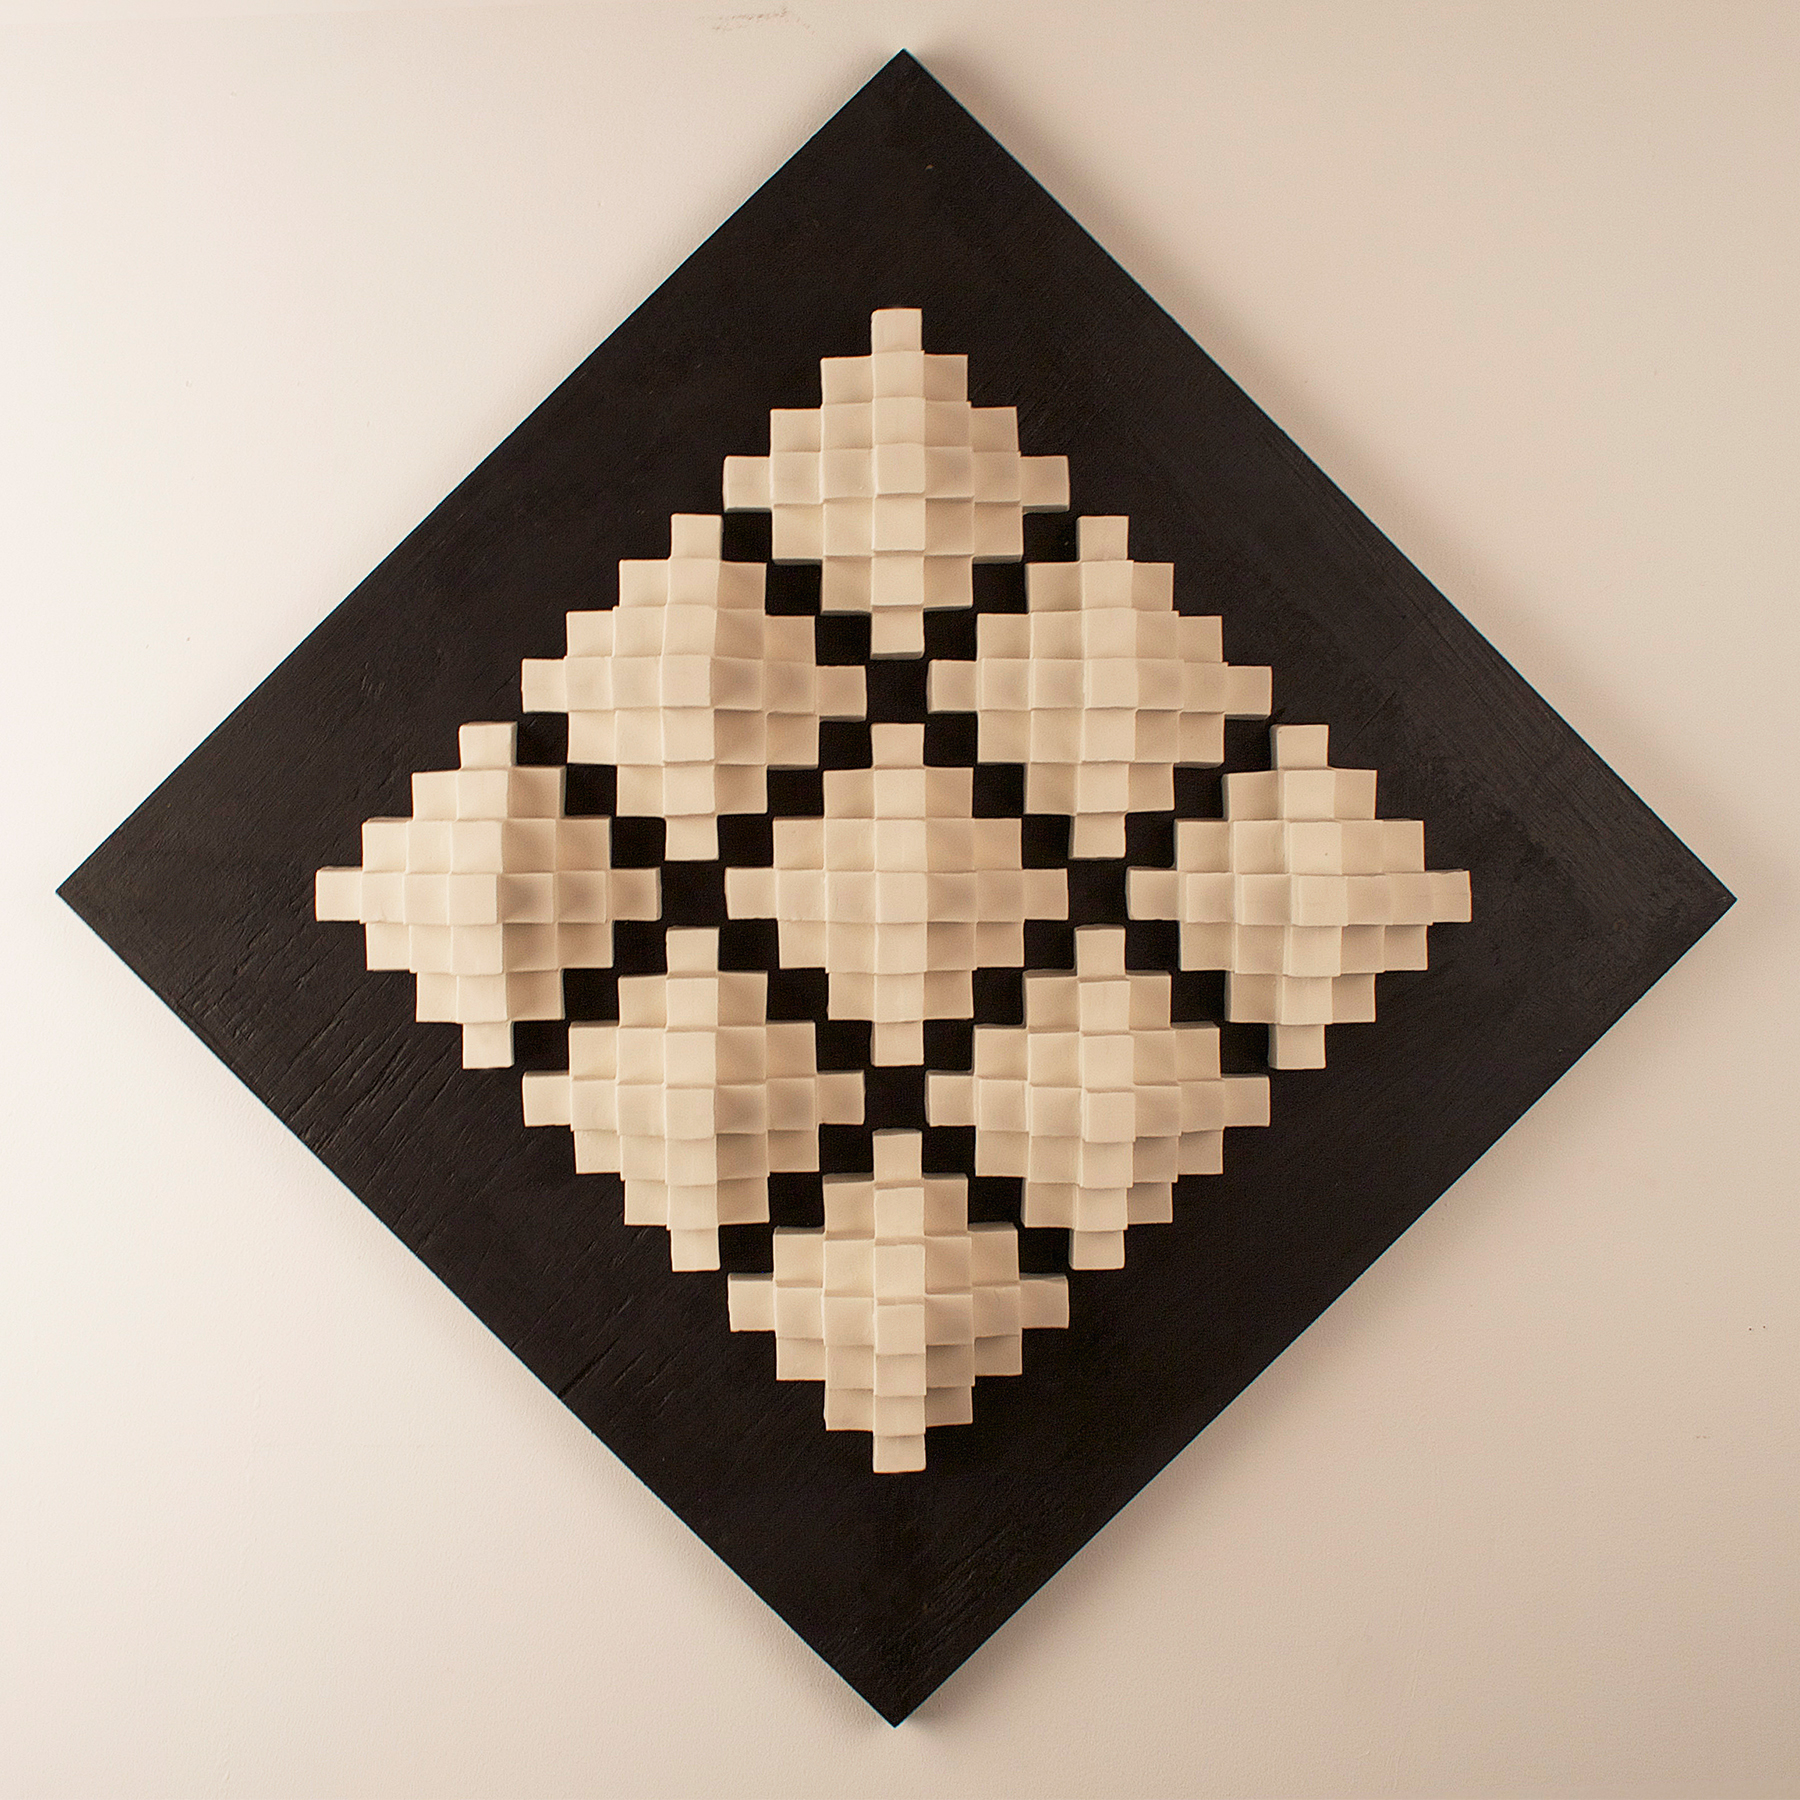 Cubic Series: Wall Panel IX  |  18 x 18 x 5 inches  |  Porcelain, Stained birch  |  2015